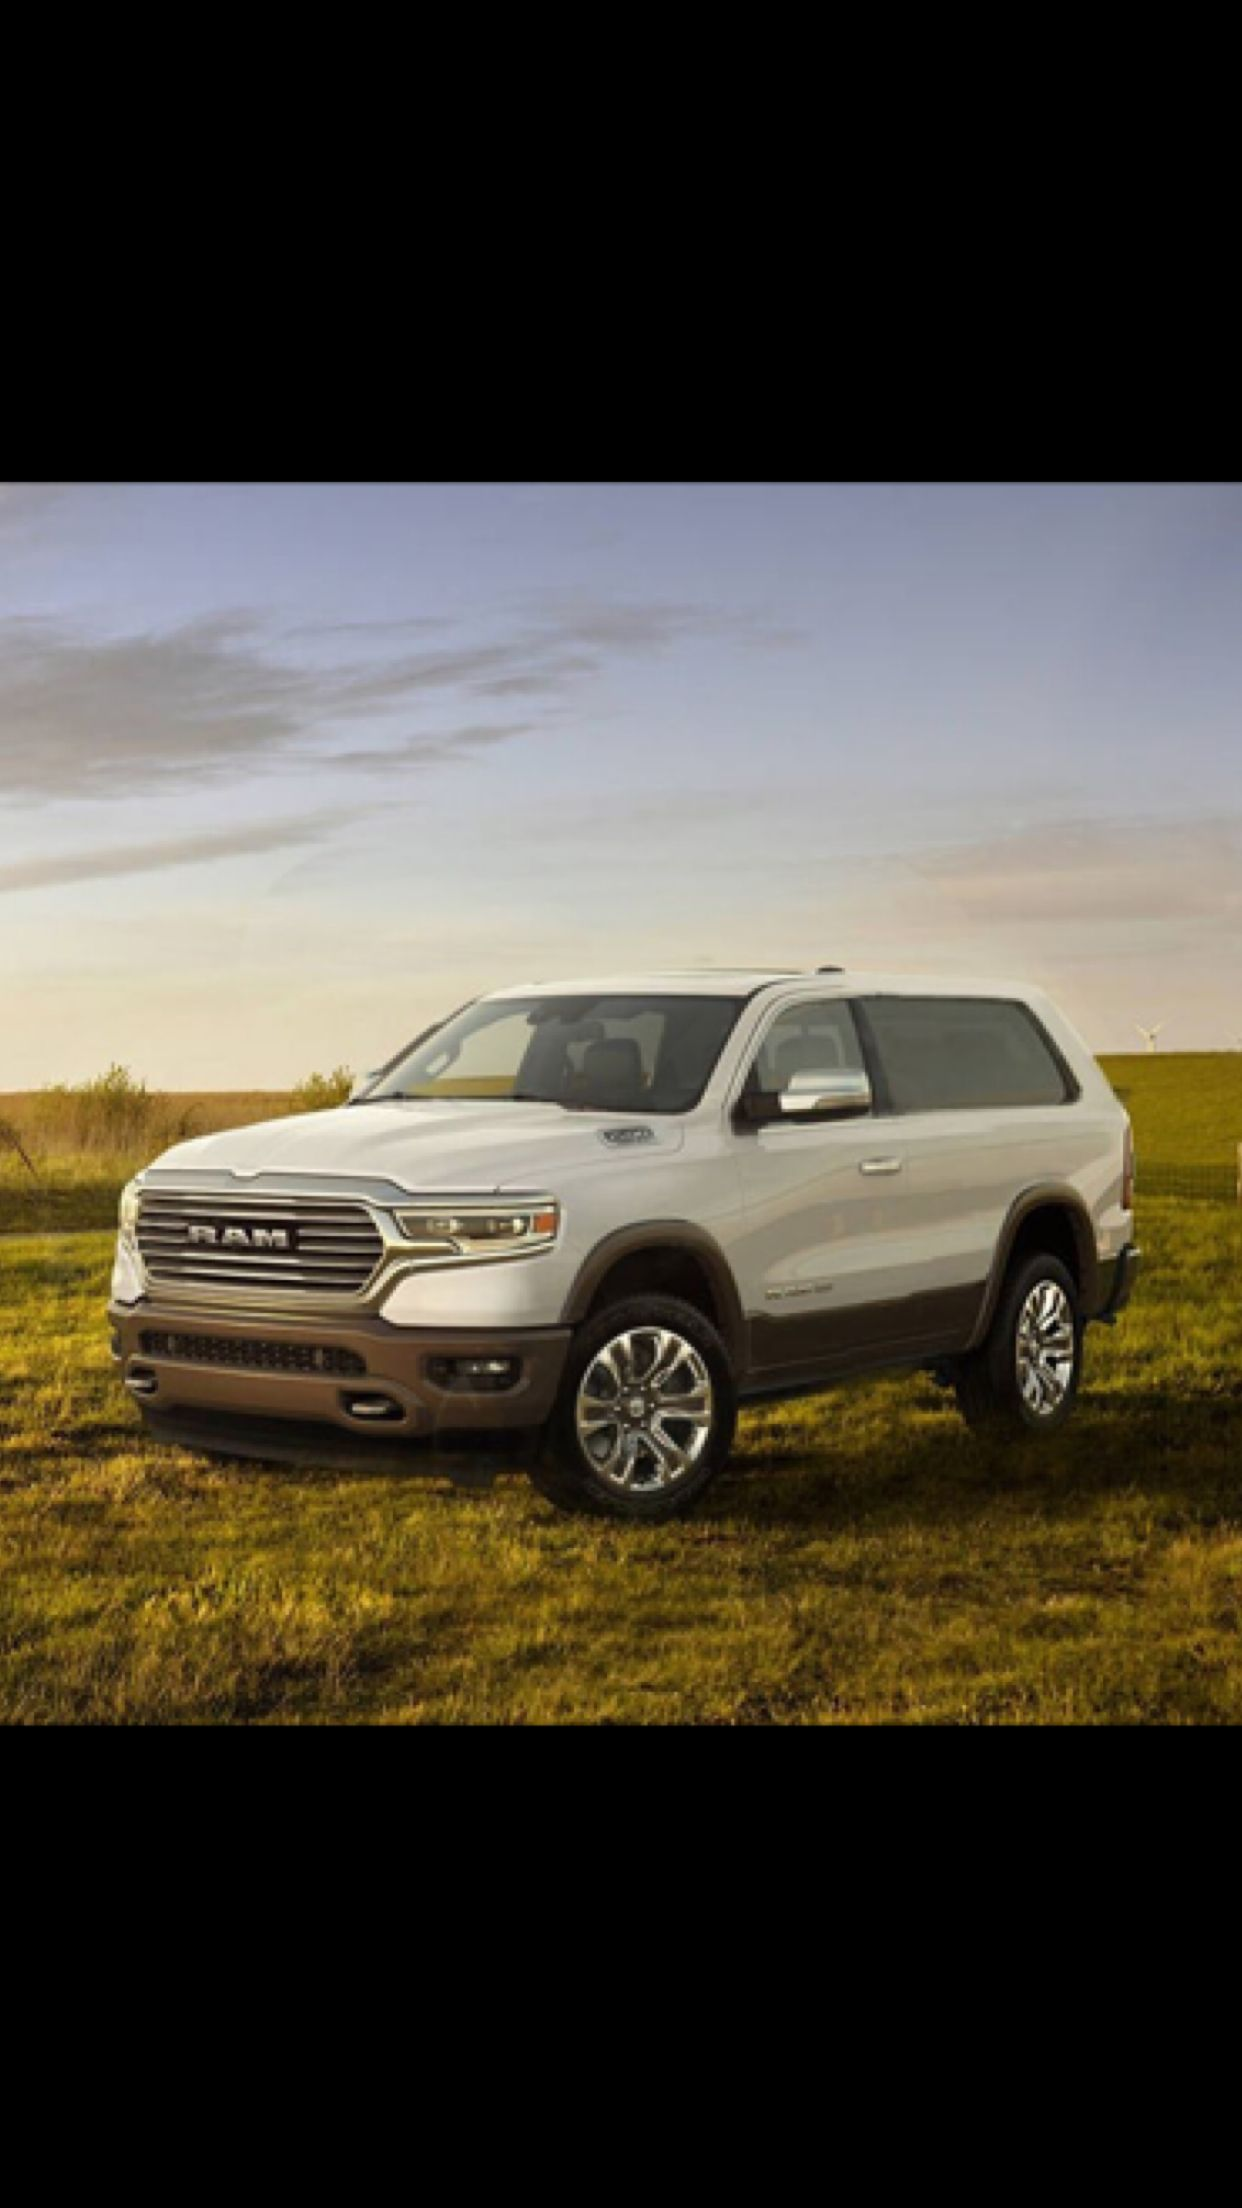 15 Best 2019 Ramcharger Price